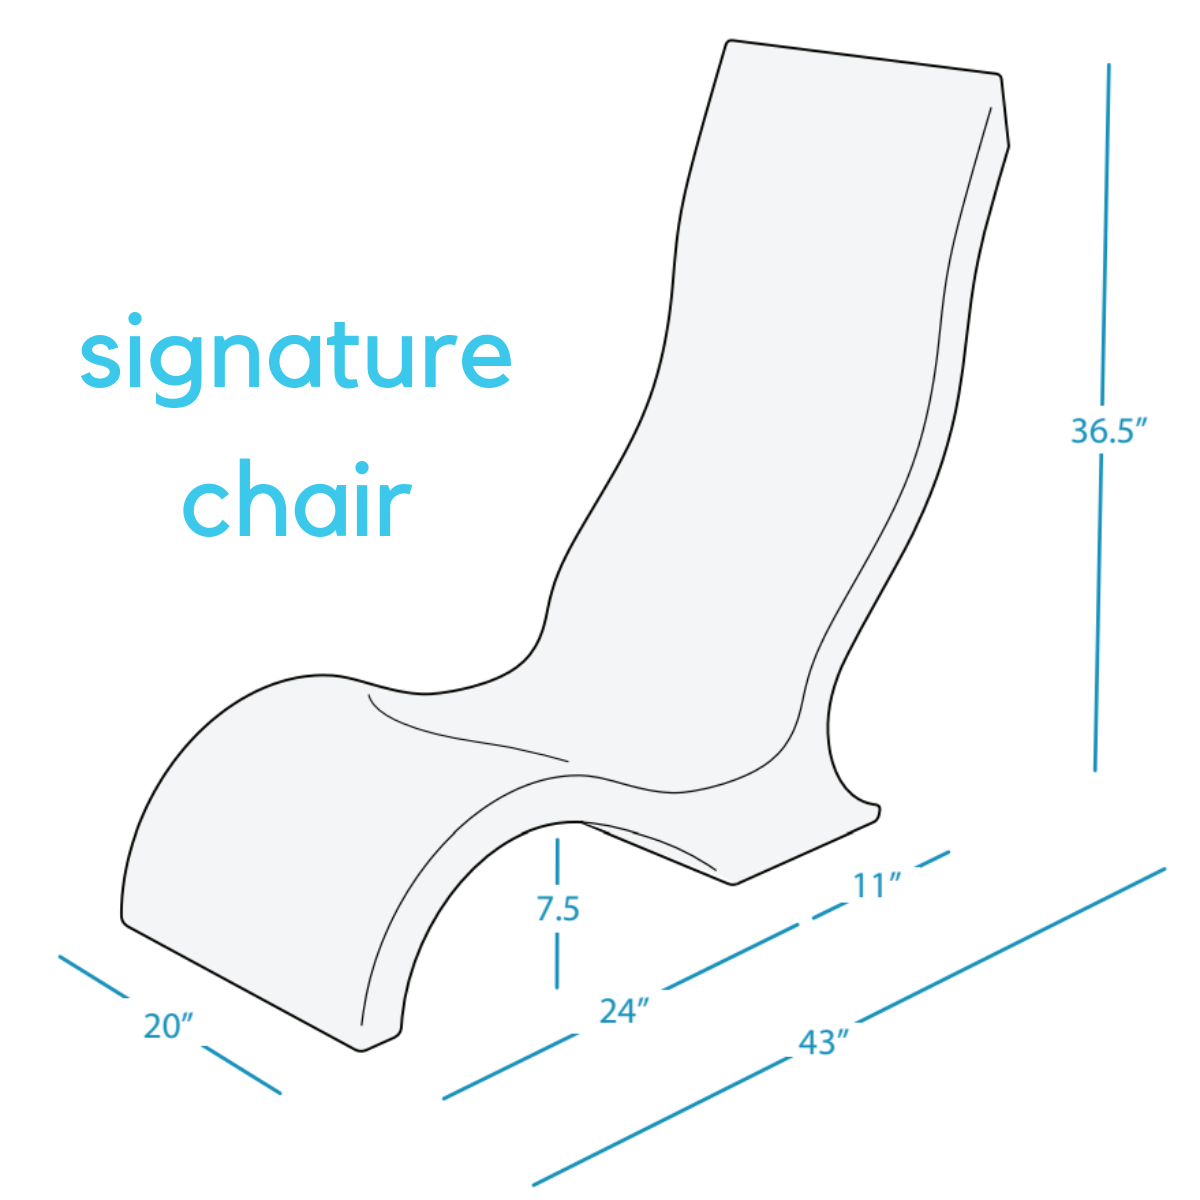 Ledge Lounger signature-chair-dimensions